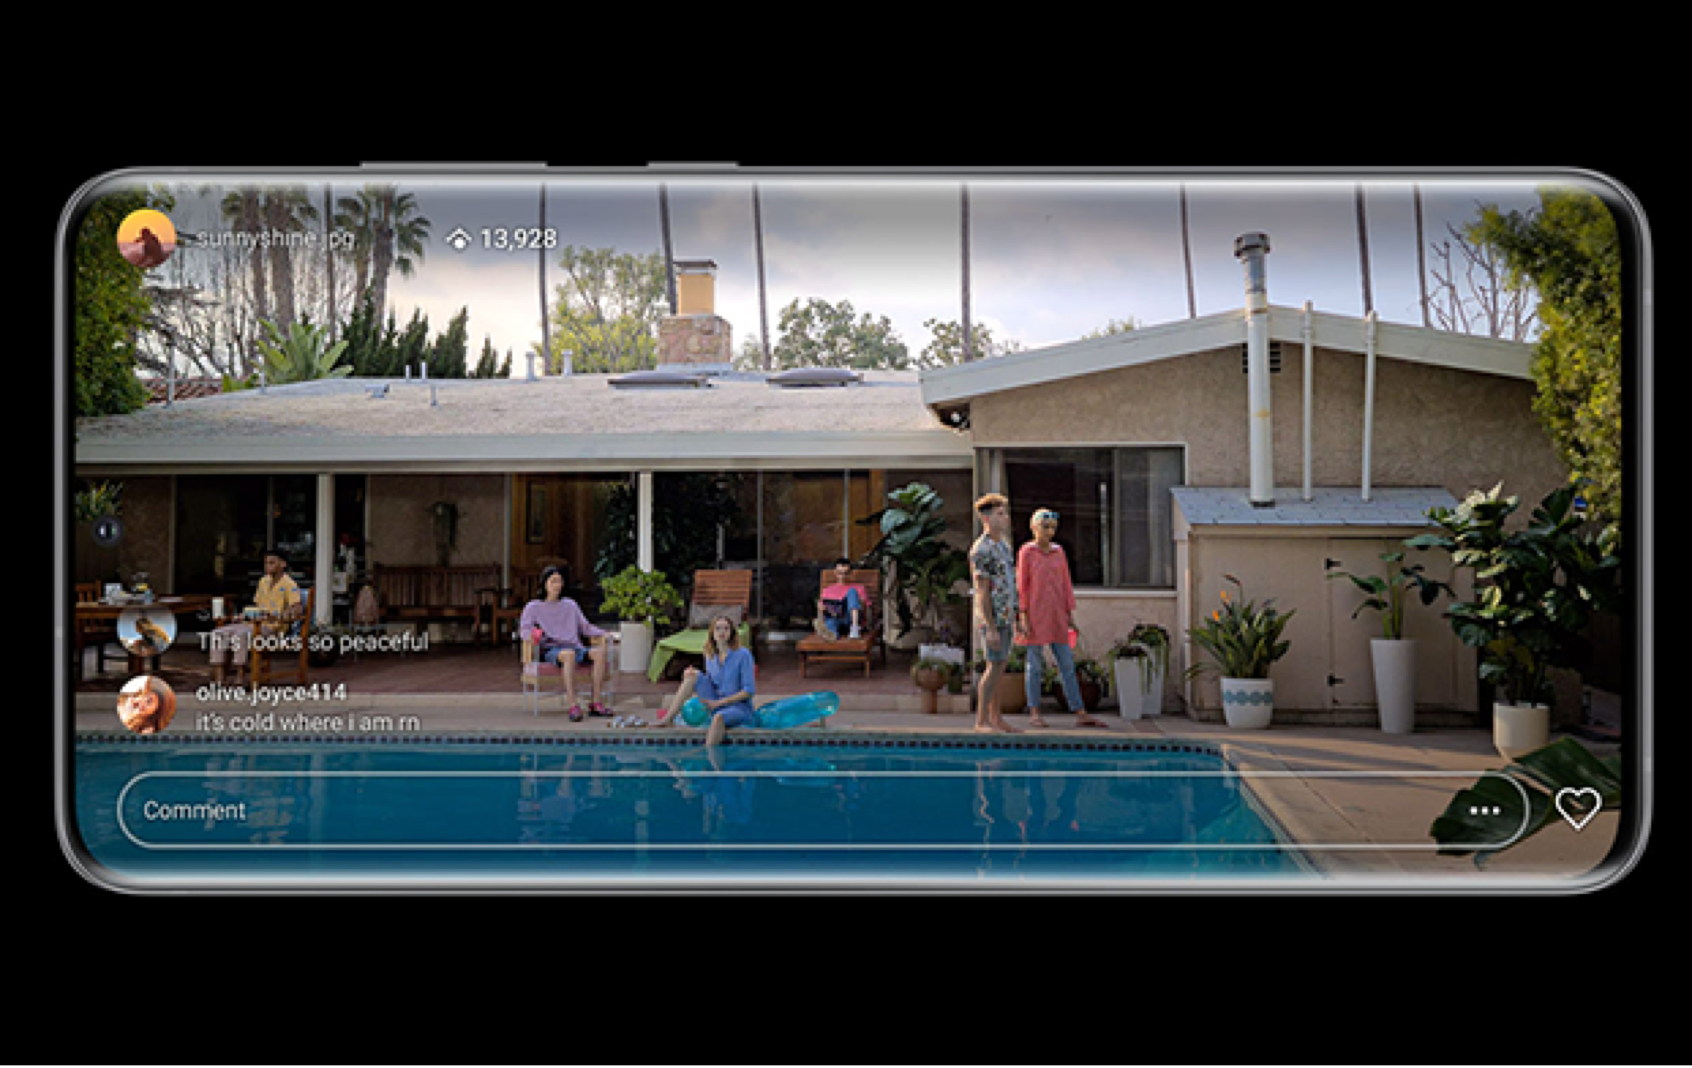 Samsung S20 5G phone screen streaming view of backyard of home with pool and people.